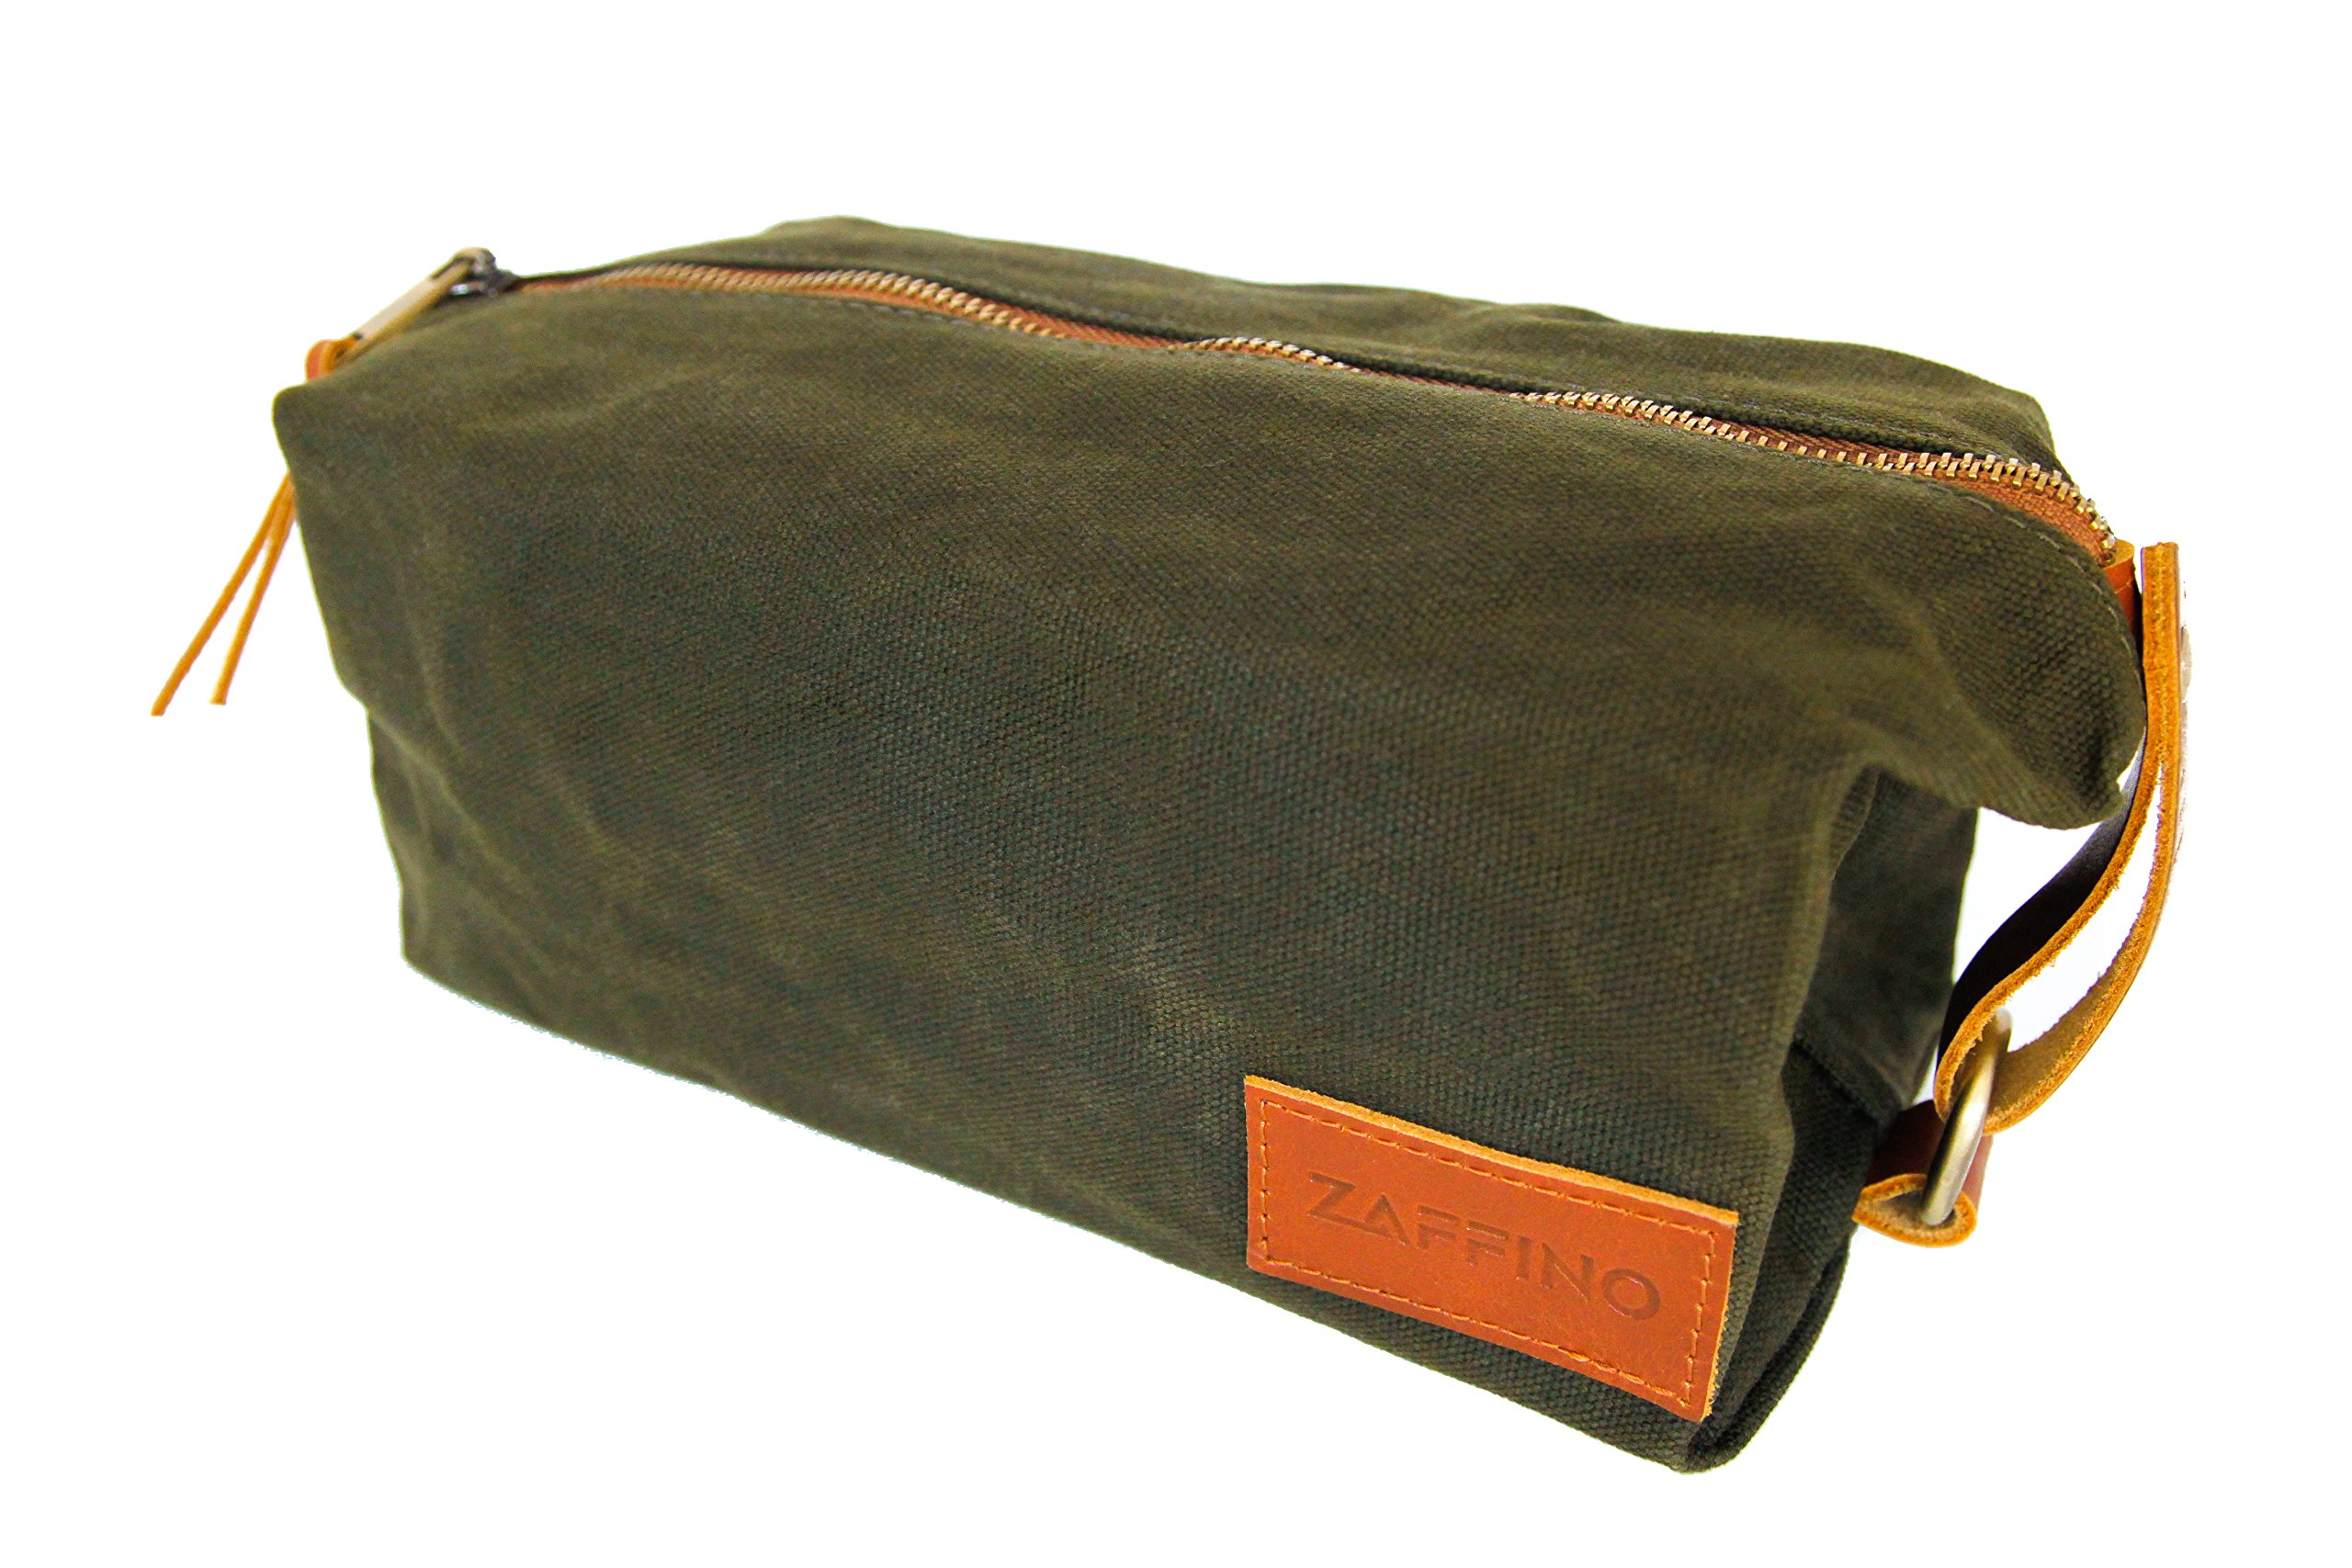 Zaffino Waxed Canvas Genuine Leather Trim Dopp Kit - Unisex Toiletry Bag & Travel Kit